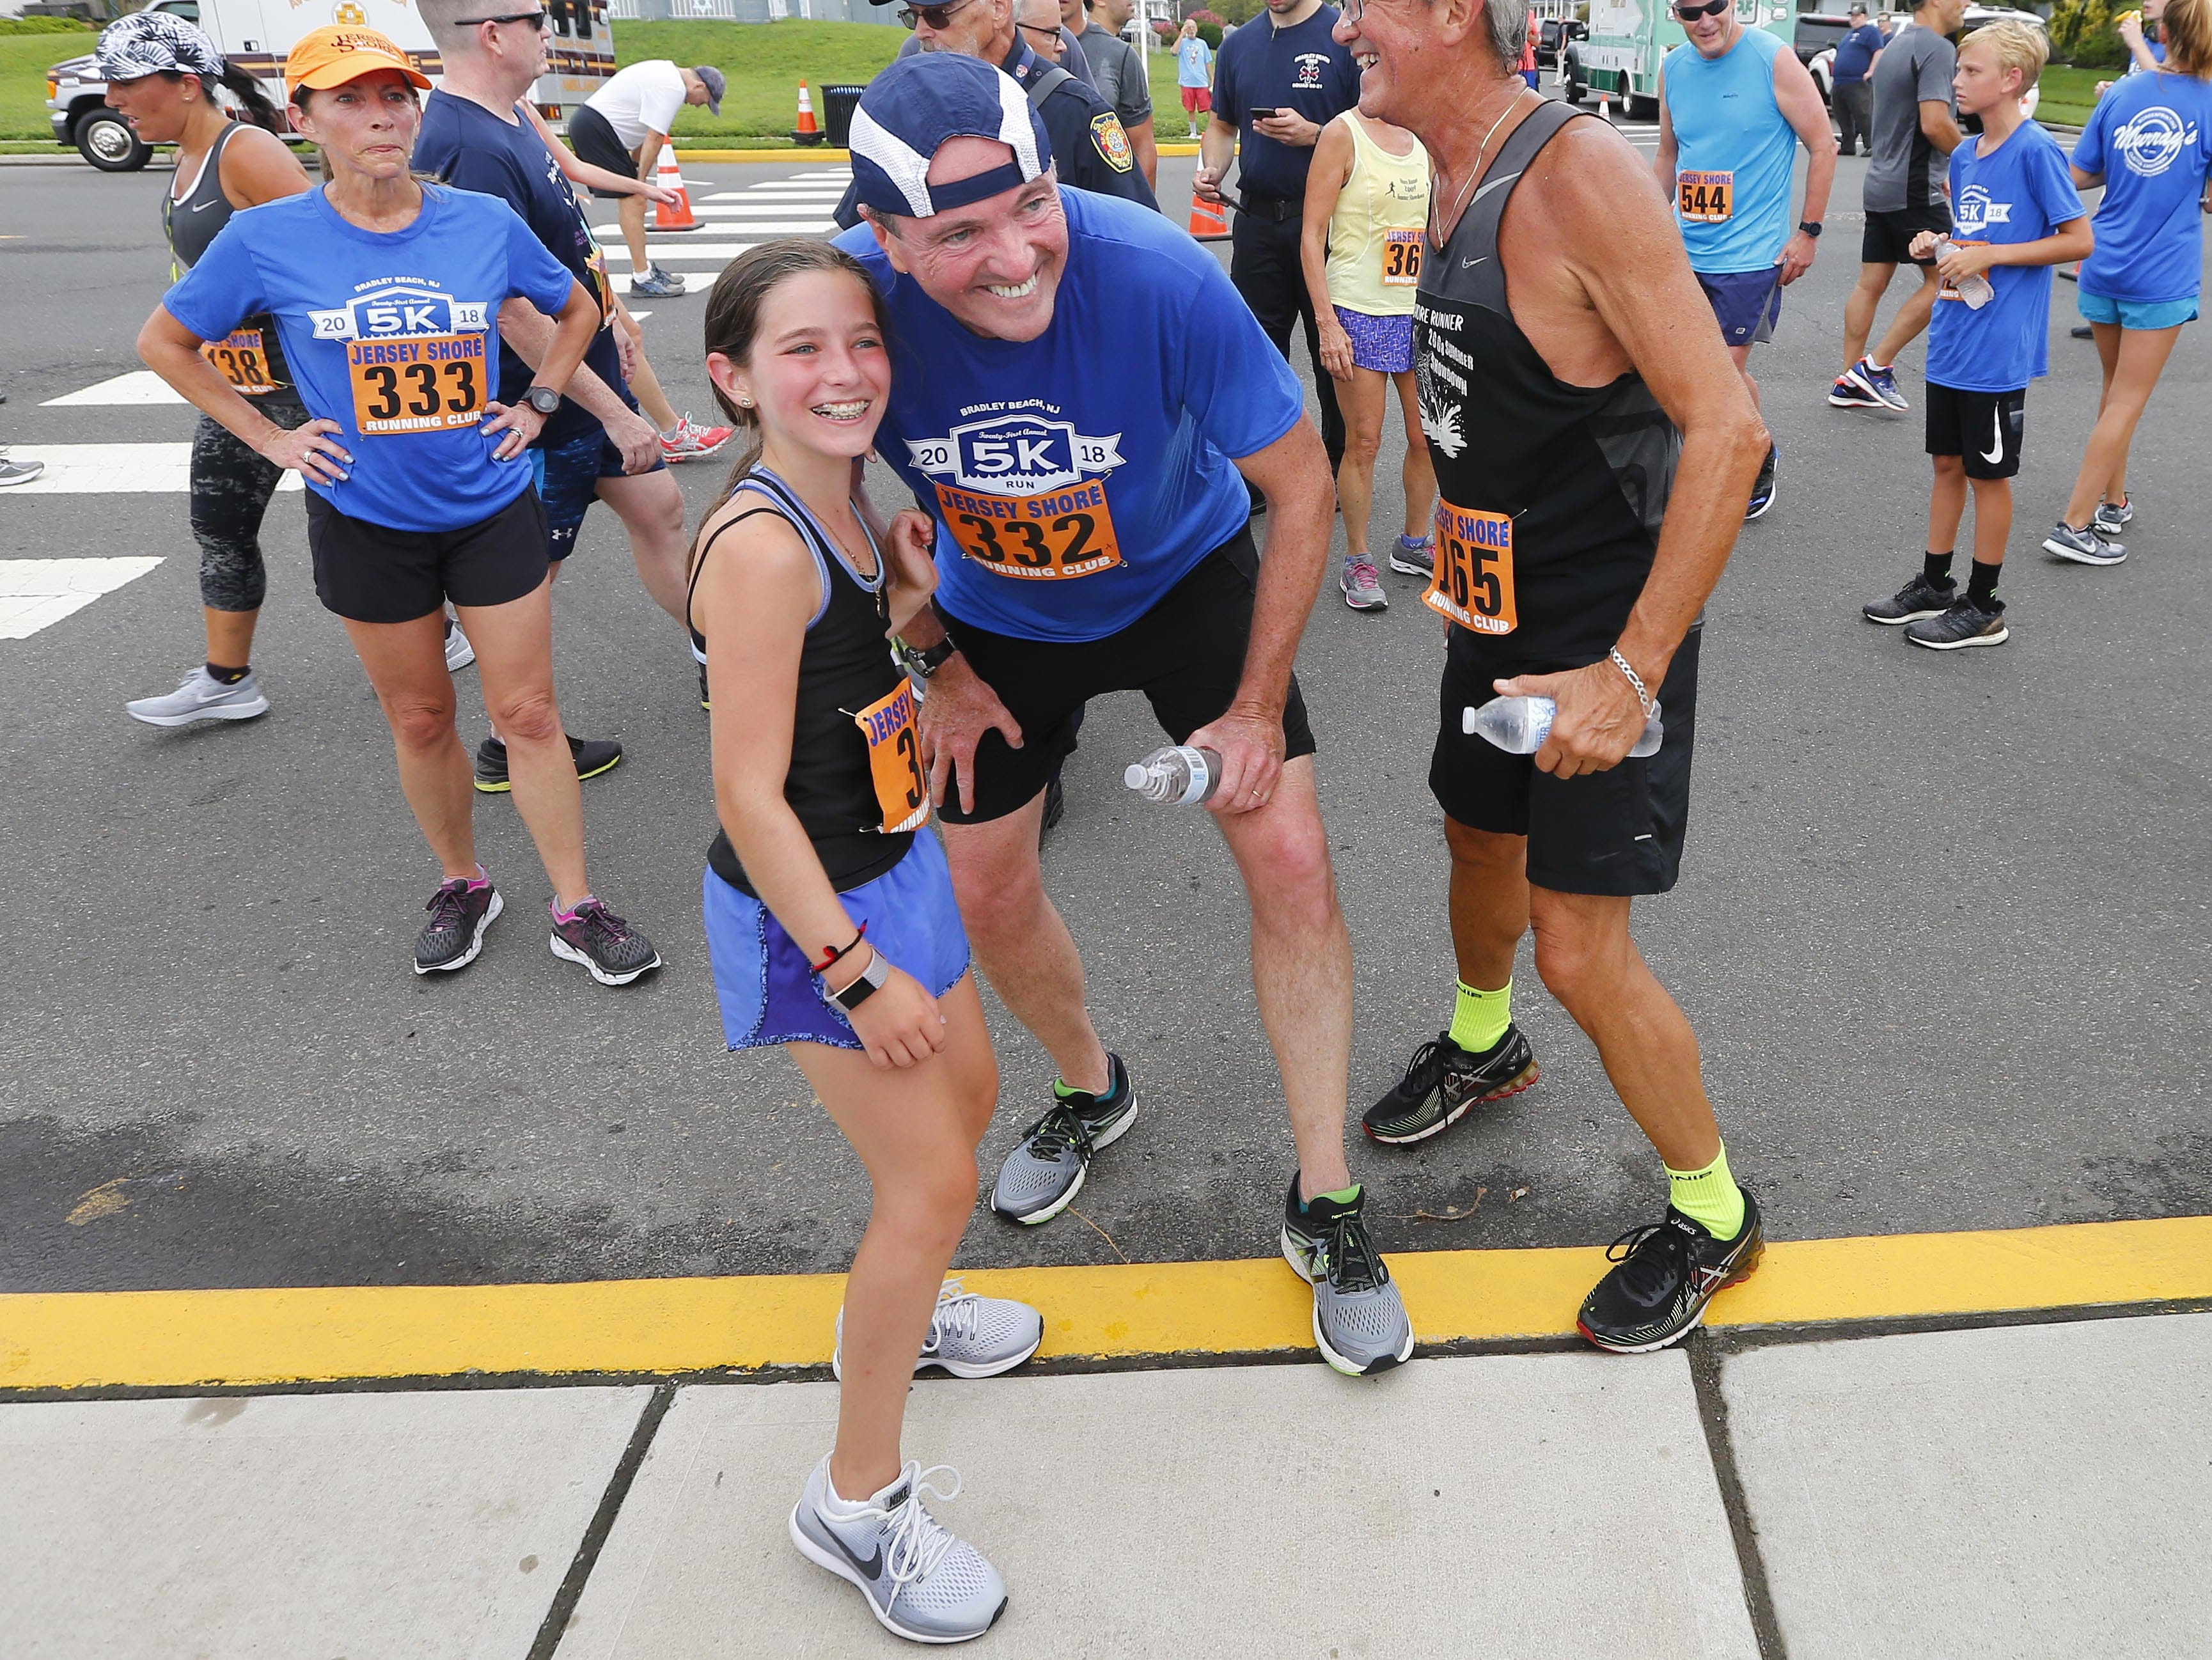 NJ Gov. Phil Murphy takes a photo with runner Lexie Berggrun, 12, of New York, after the Bradley Beach 5K race Saturday, Aug. 17, 2018.